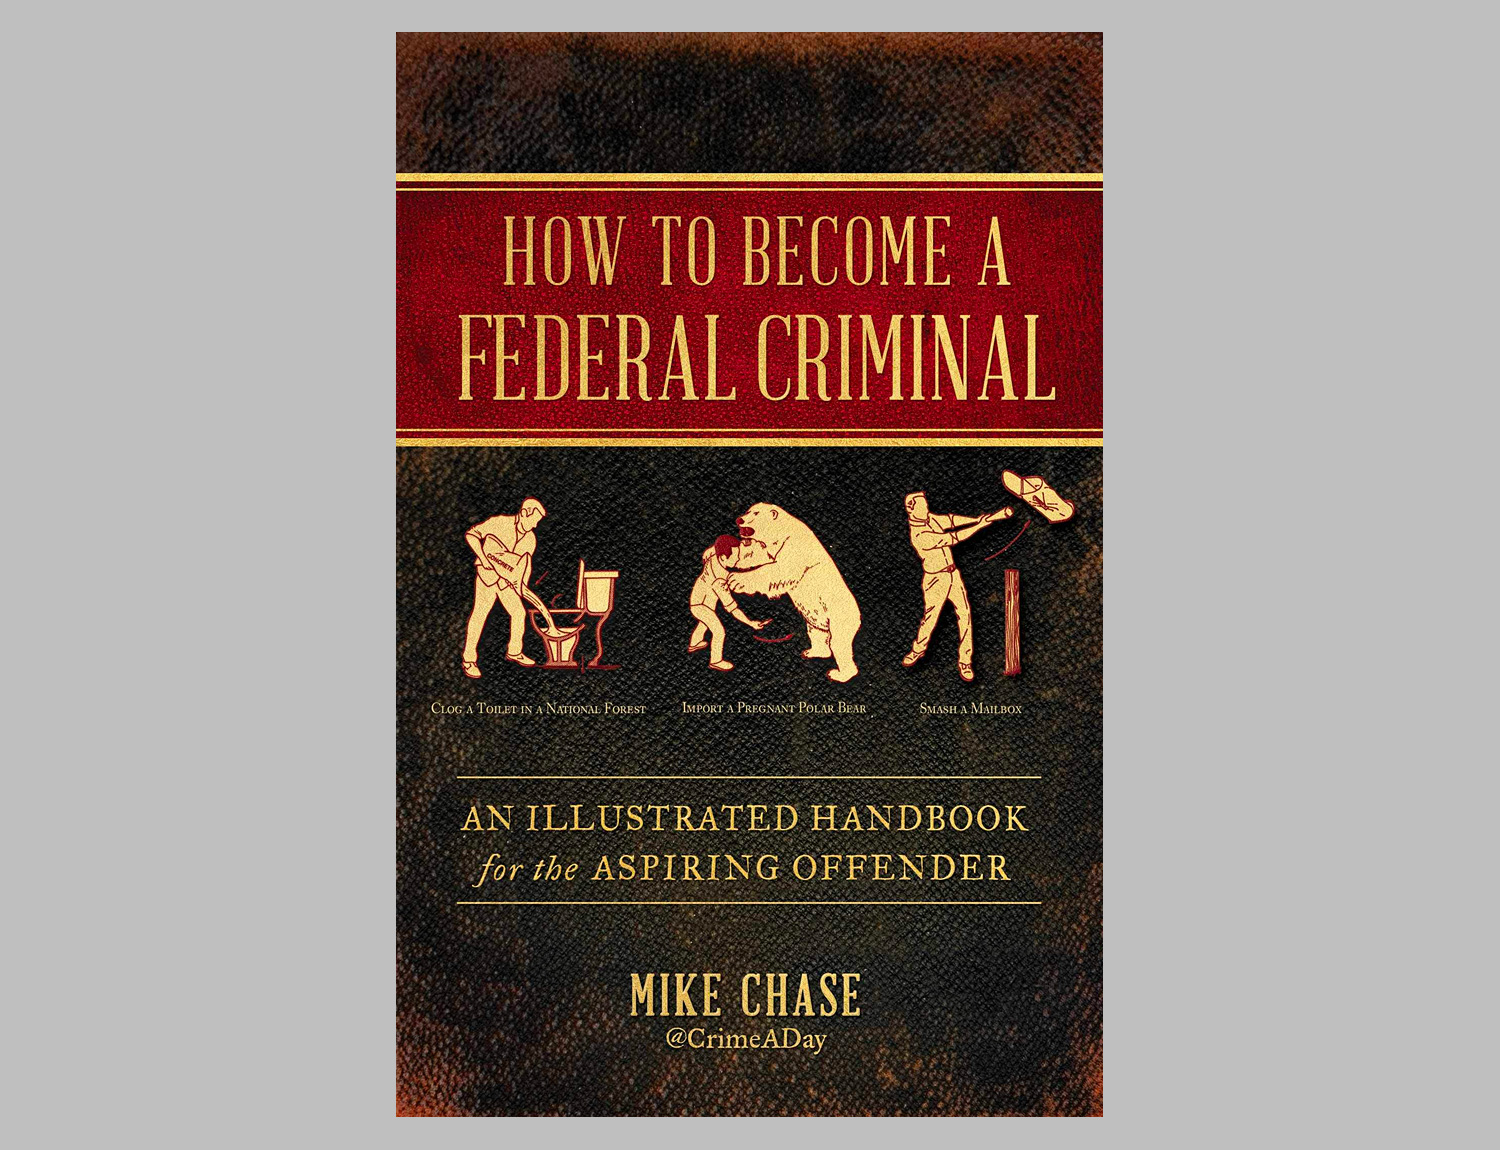 How to Become a Federal Criminal: An Illustrated Handbook for the Aspiring Offender at werd.com